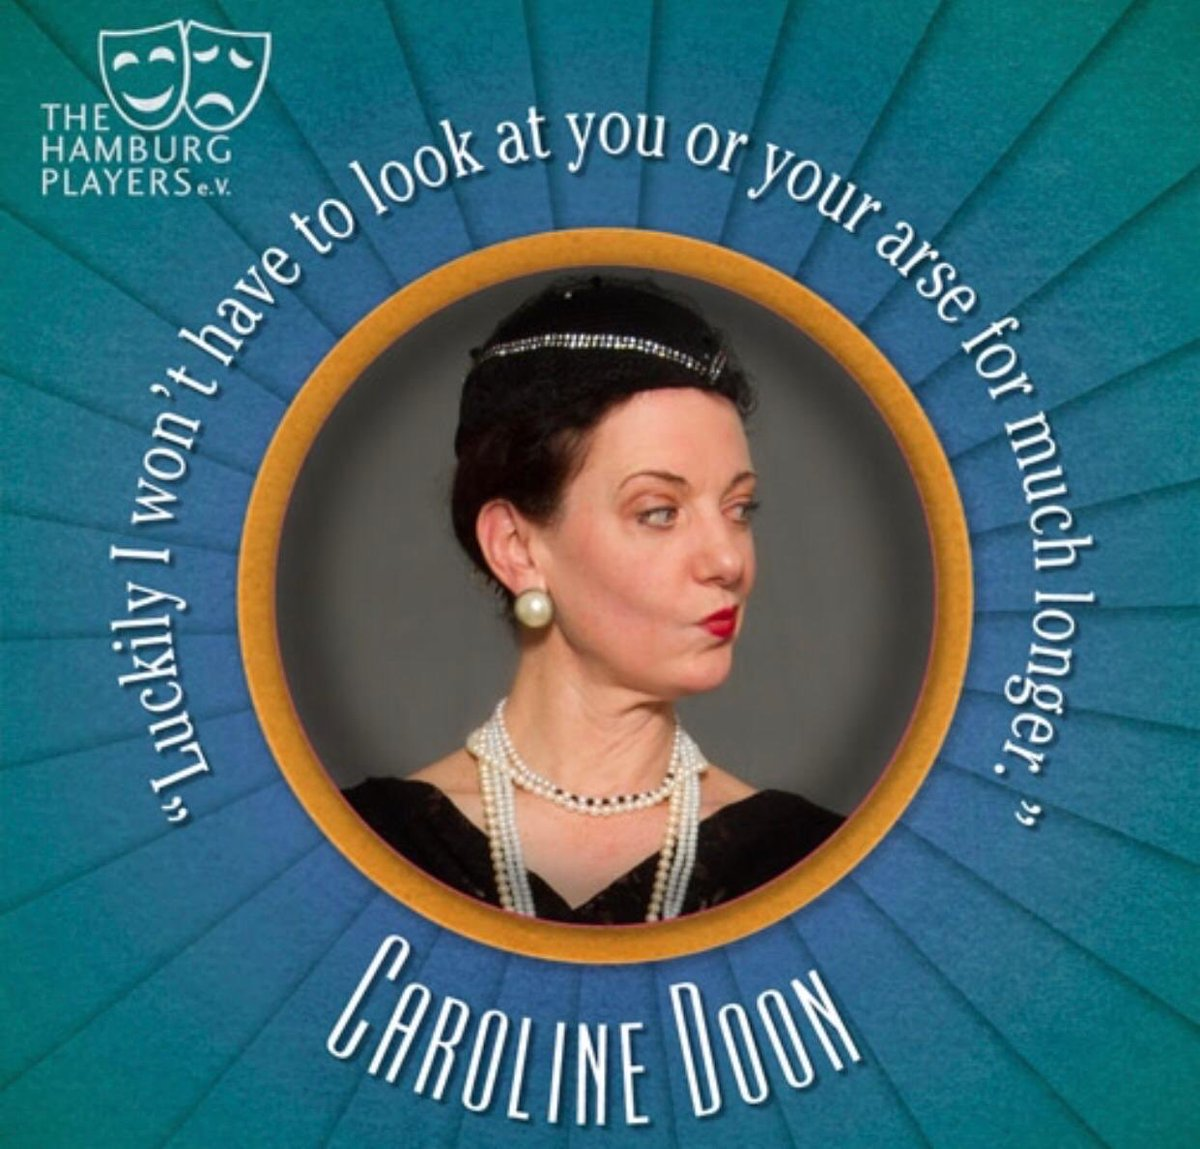 Miss Doon craves for the new general manager position in Deauville. But the sharing on the personal and sensitive affairs of others can lead to harms way, no?  Death in High Heels: 13-23 February at Theater an der Marschnerstraße http://www.hamburgplayers.de/tickets   #theaterinhamburg pic.twitter.com/0uqlgJMyx0